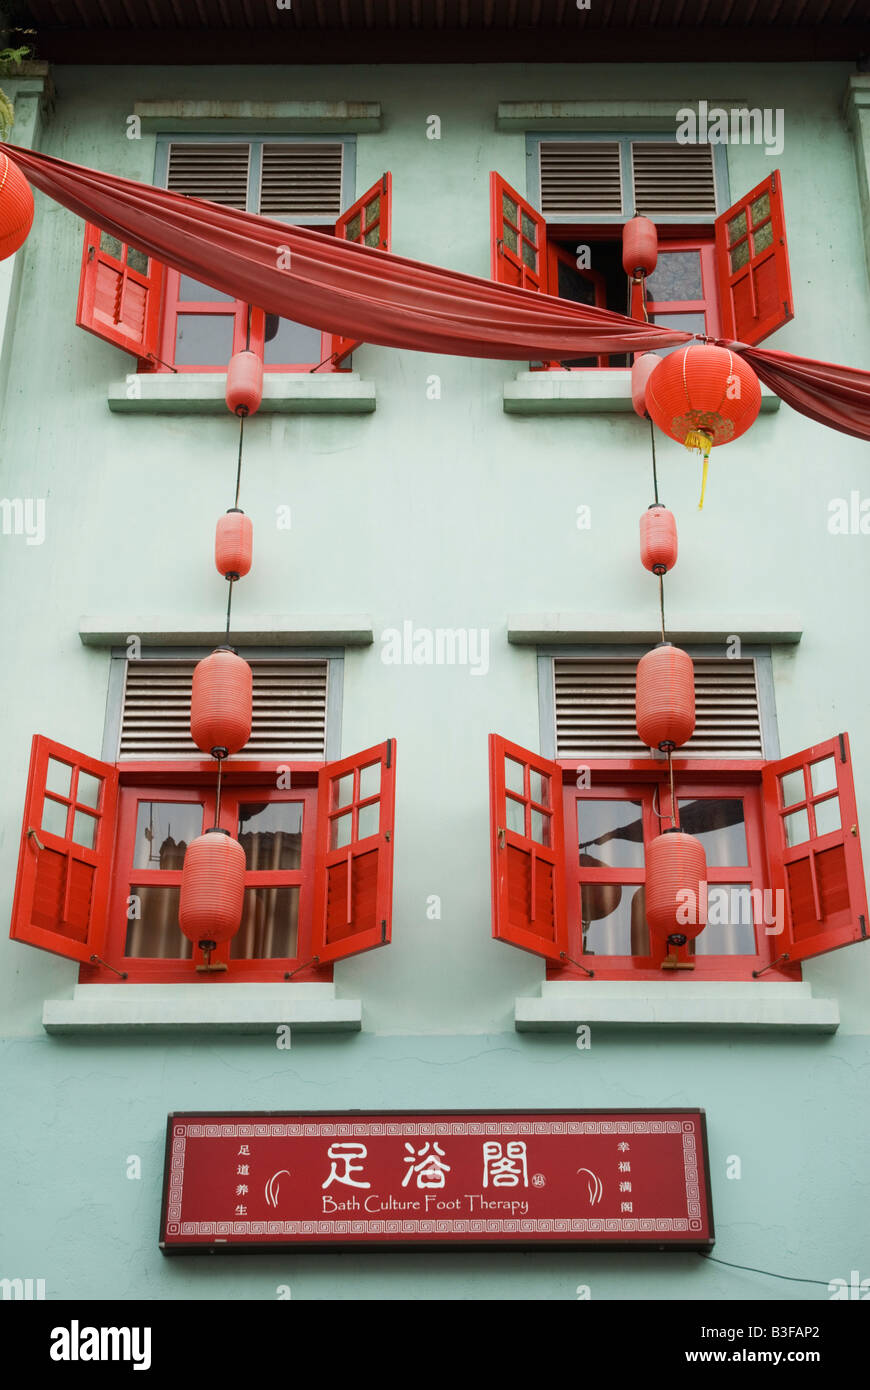 Red and green shophouse facade Chinatown, Singapore - Stock Image